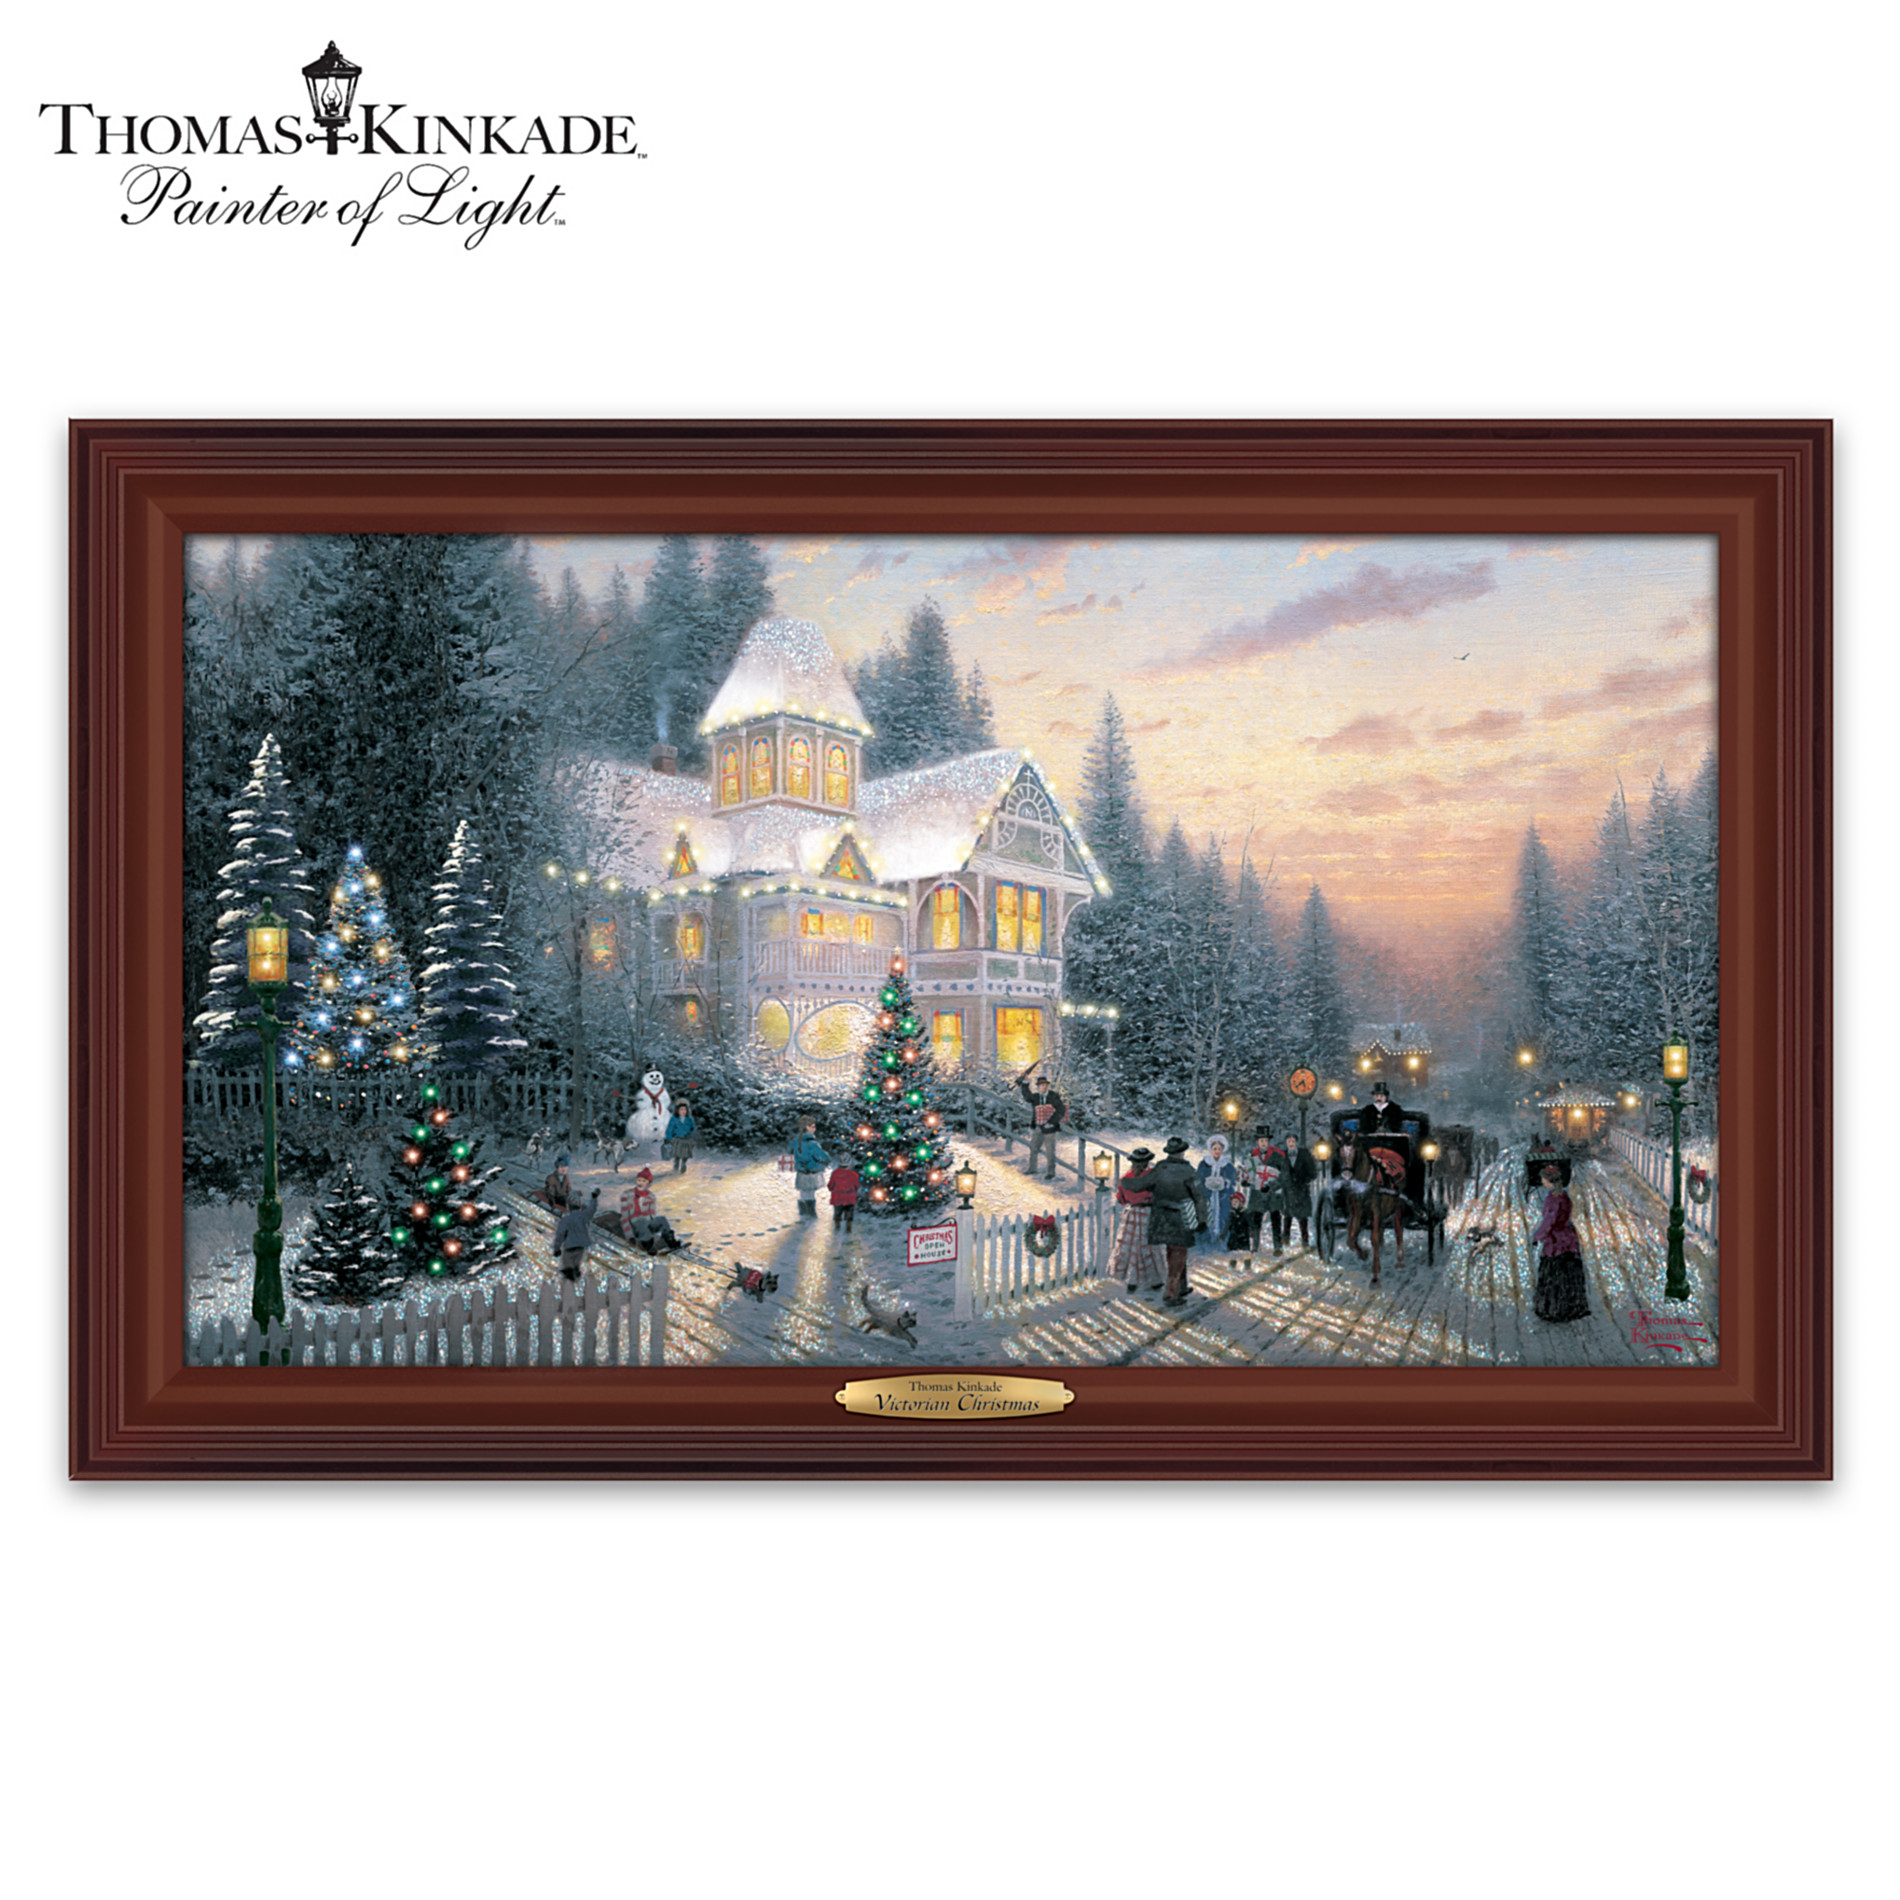 The Bradford Exchange Wall Decor: Thomas Kinkade Victorian Christmas Wall Decor at Sears.com